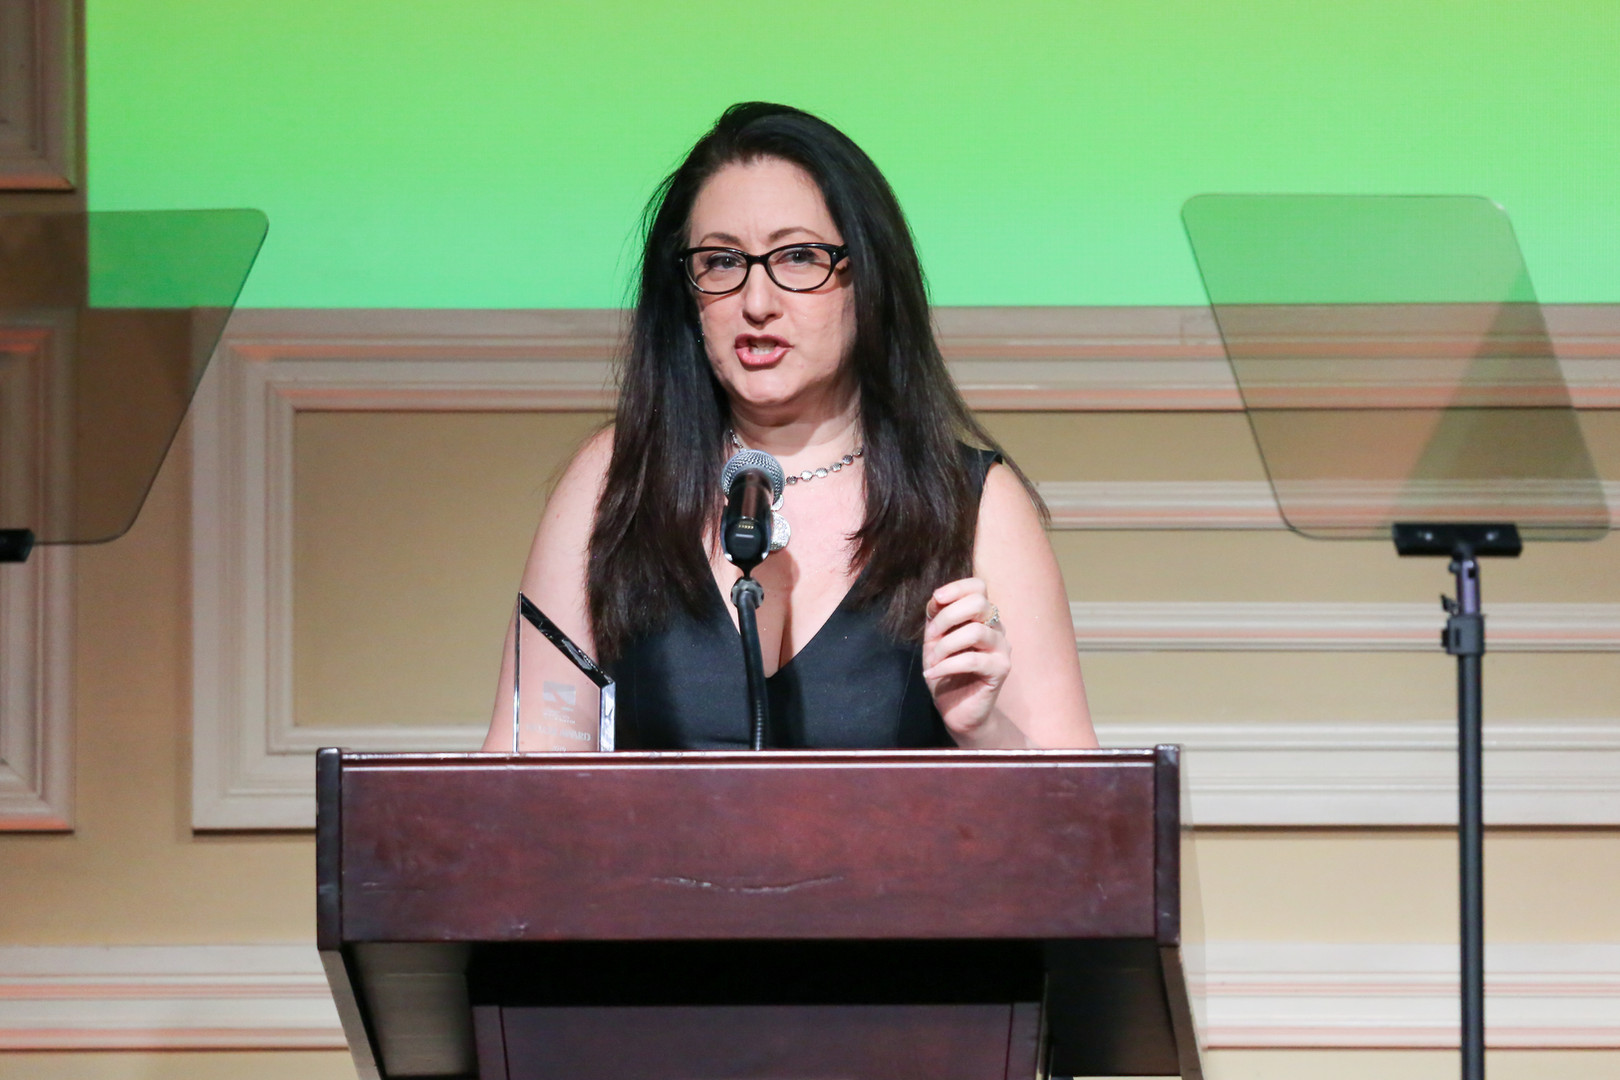 Ivy Isenberg receiving the 2019 Heller Award for Video Game Casting Director of the Year